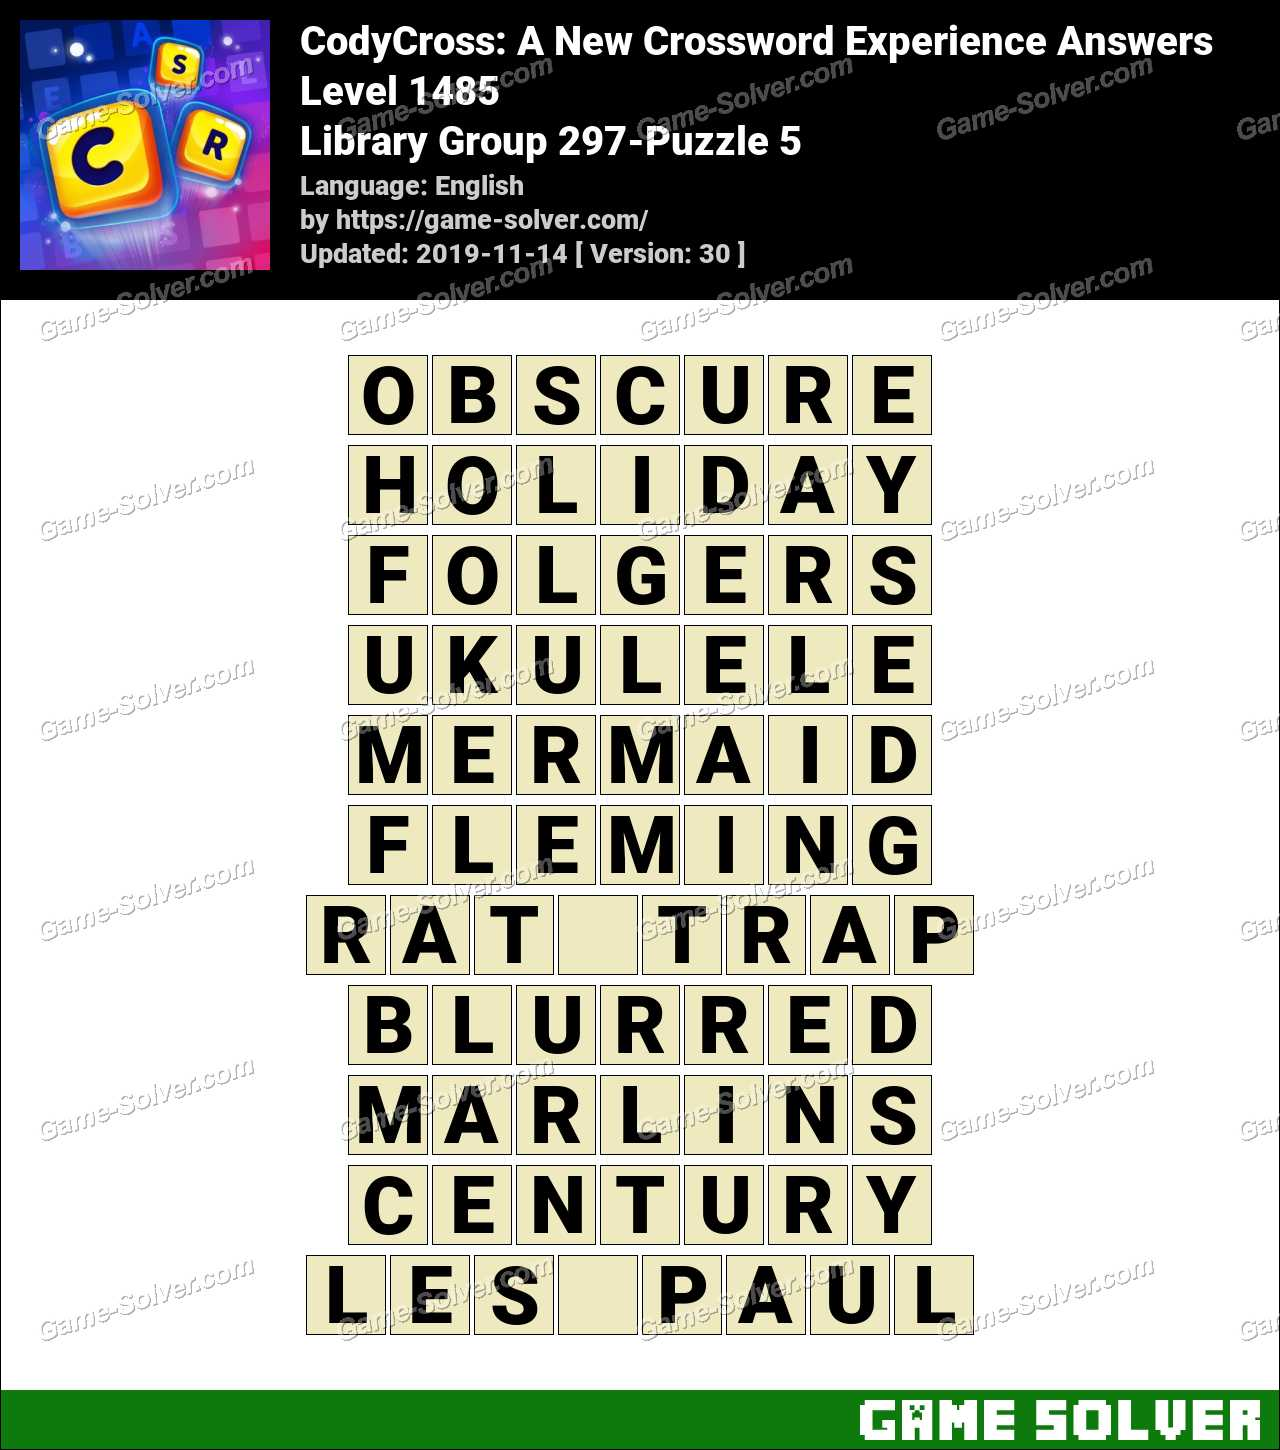 CodyCross Library Group 297-Puzzle 5 Answers